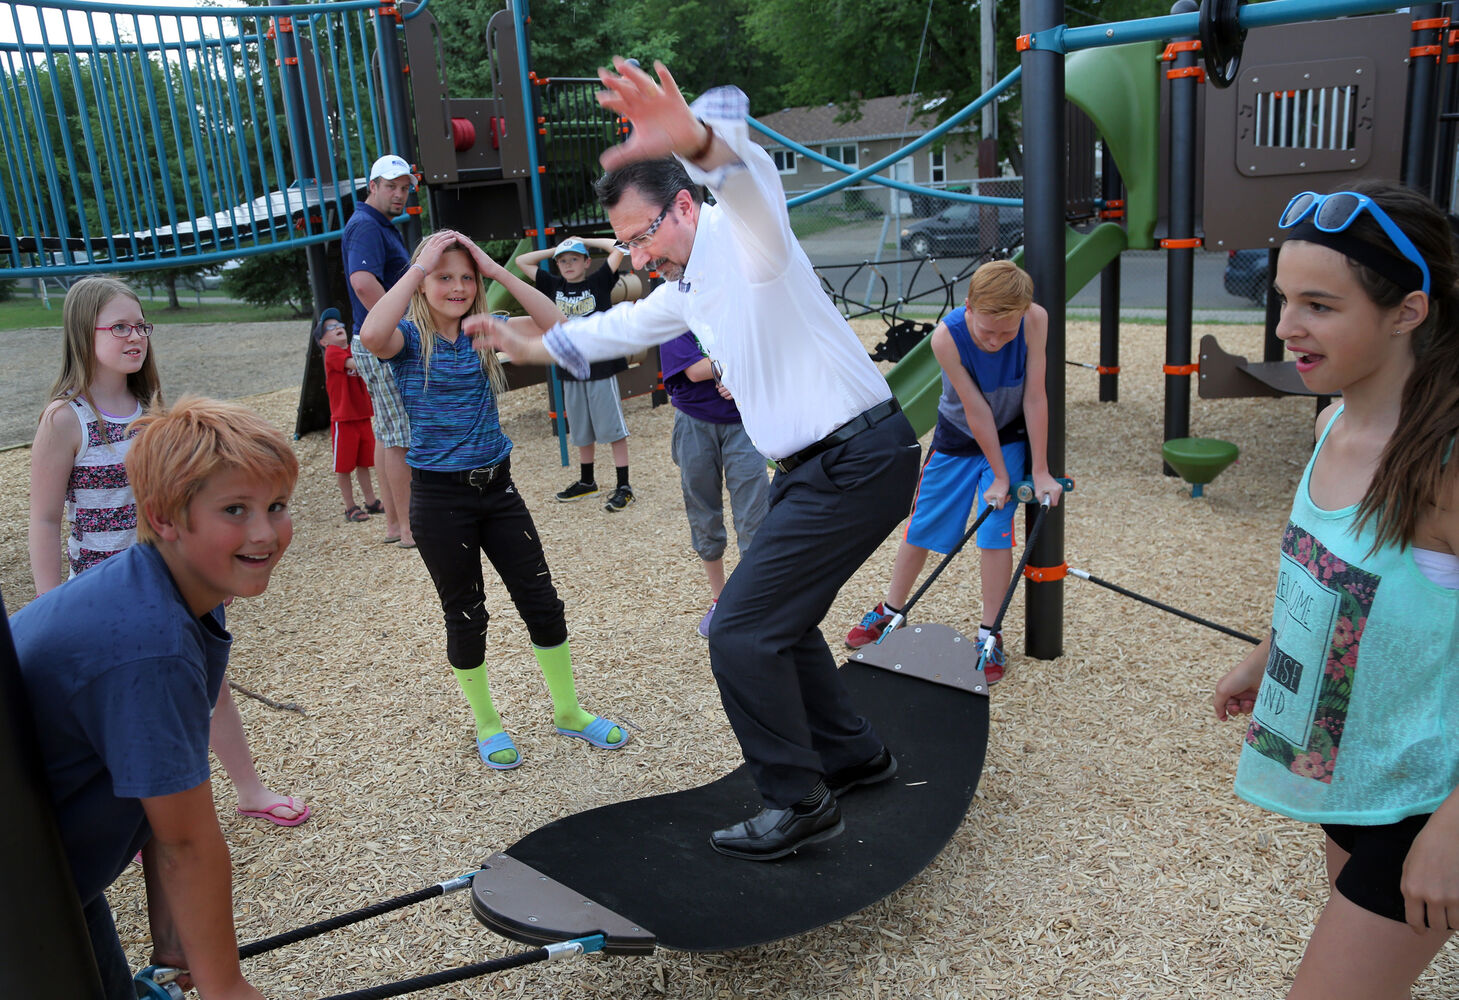 Mayor Rick Chrest tries his hand at the new playground structure at Valleyview School in June. The school opened the structure after fundraising by parents contributed $100,000 since 2011. (Colin Corneau/Brandon Sun)